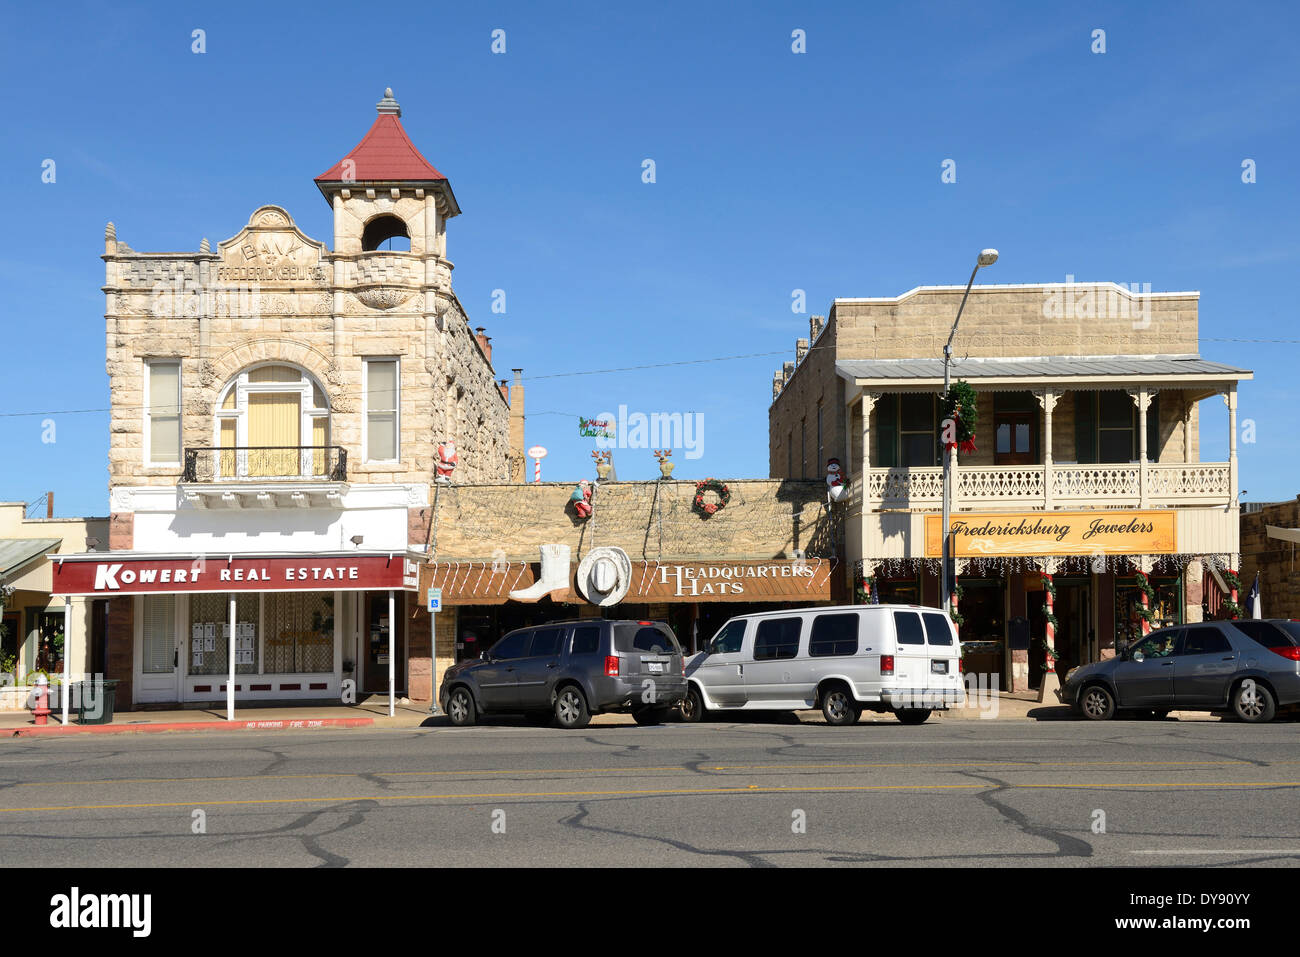 Usa united states america texas hill country for The smallest town in the united states